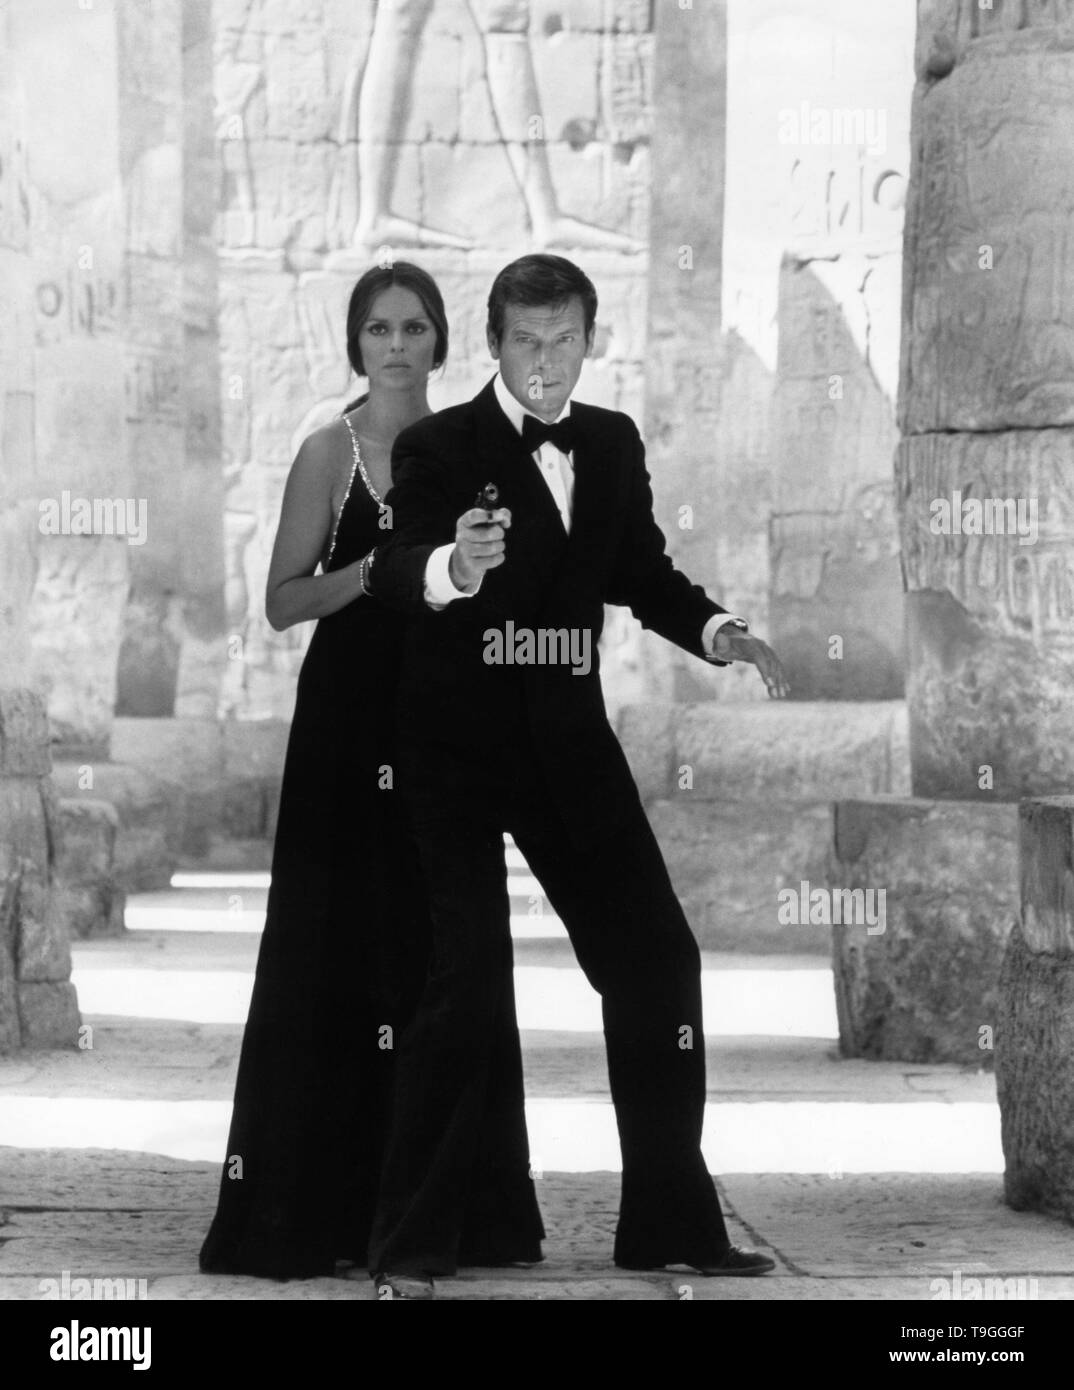 Roger Moore as James Bond 007 Barbara Bach as Russian Major Anya Amasova publicity portrait for THE SPY WHO LOVED ME 1977 director Lewis Gilbert producer Albert R. Broccoli Eon Productions / United Artists - Stock Image